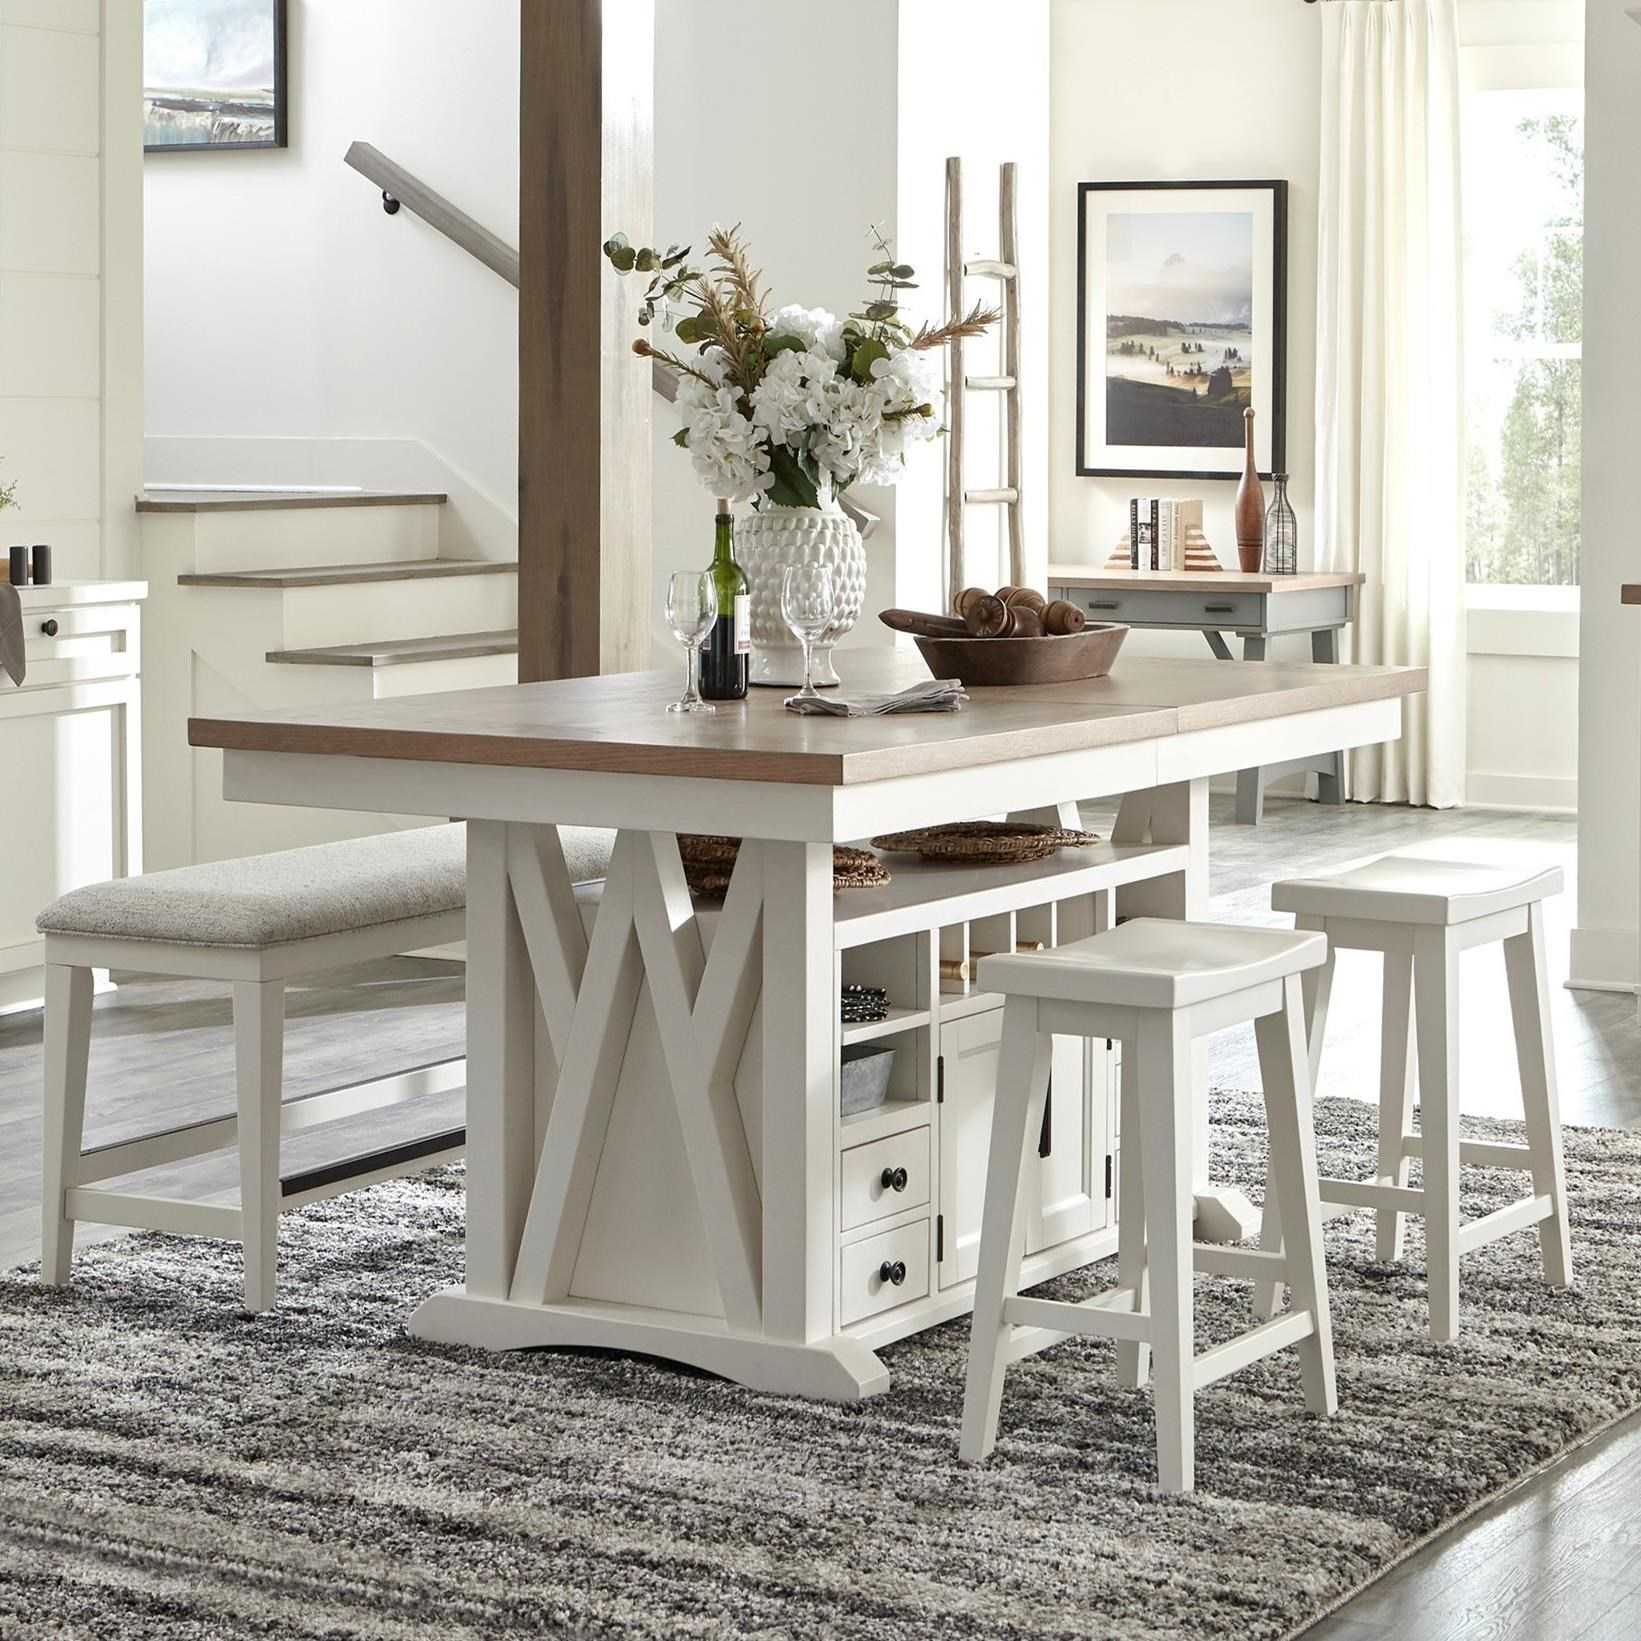 Americana Modern 4-Piece Pub Table Dining Set by Parker House at Jacksonville Furniture Mart